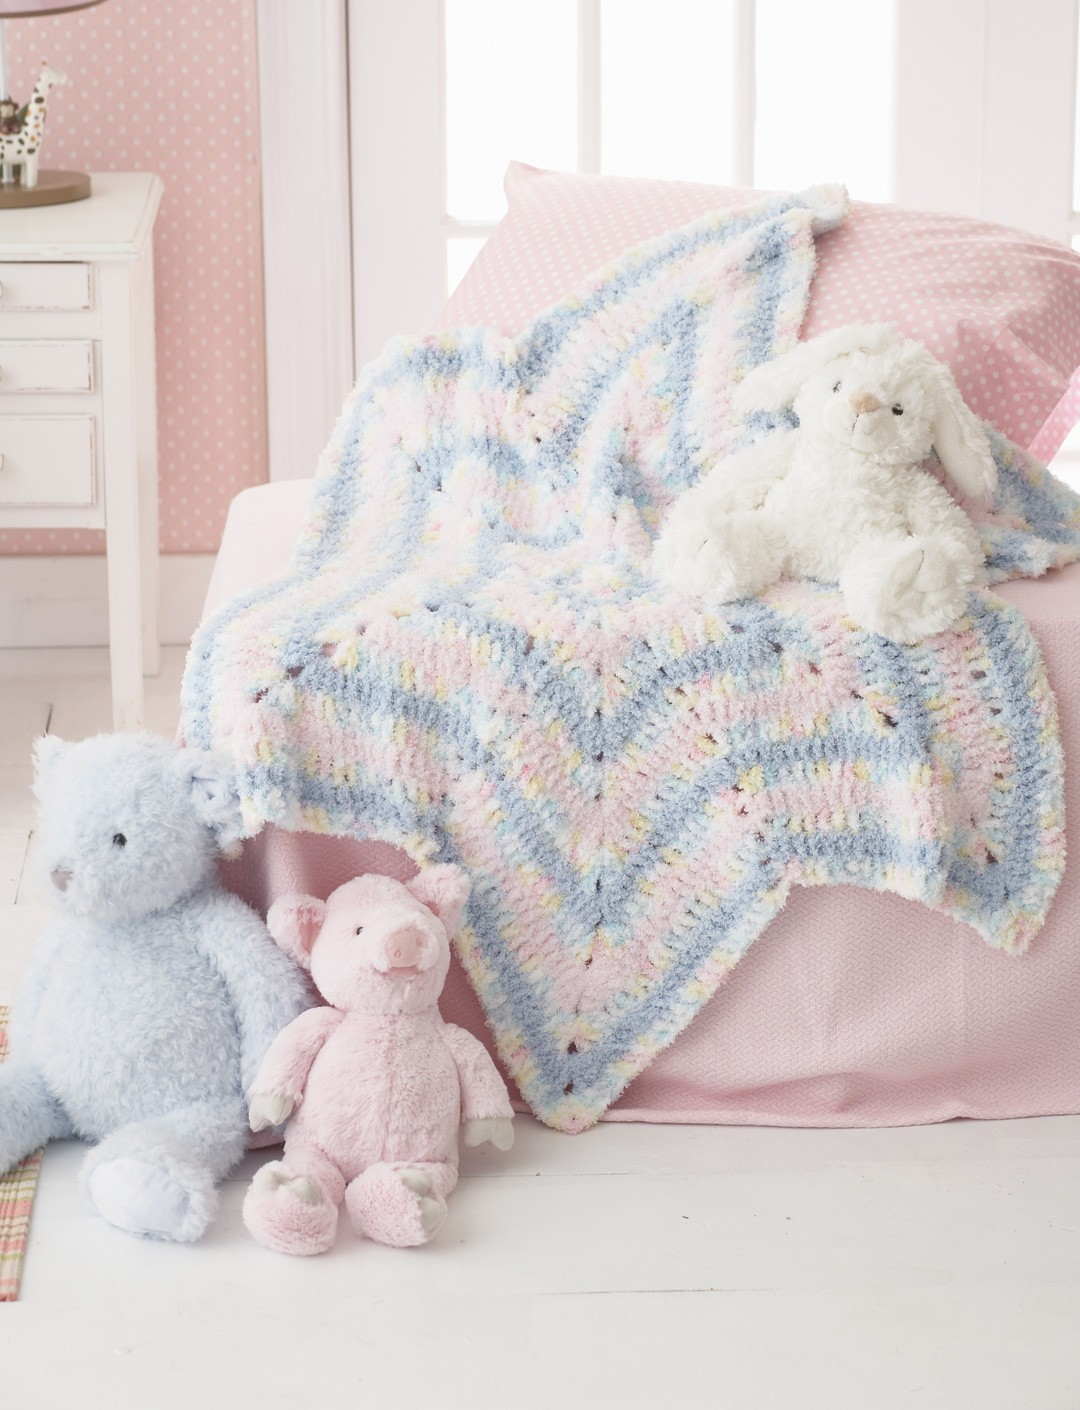 Bernat Soft Stripes Star Blanket, Crochet Pattern Yarnspirations